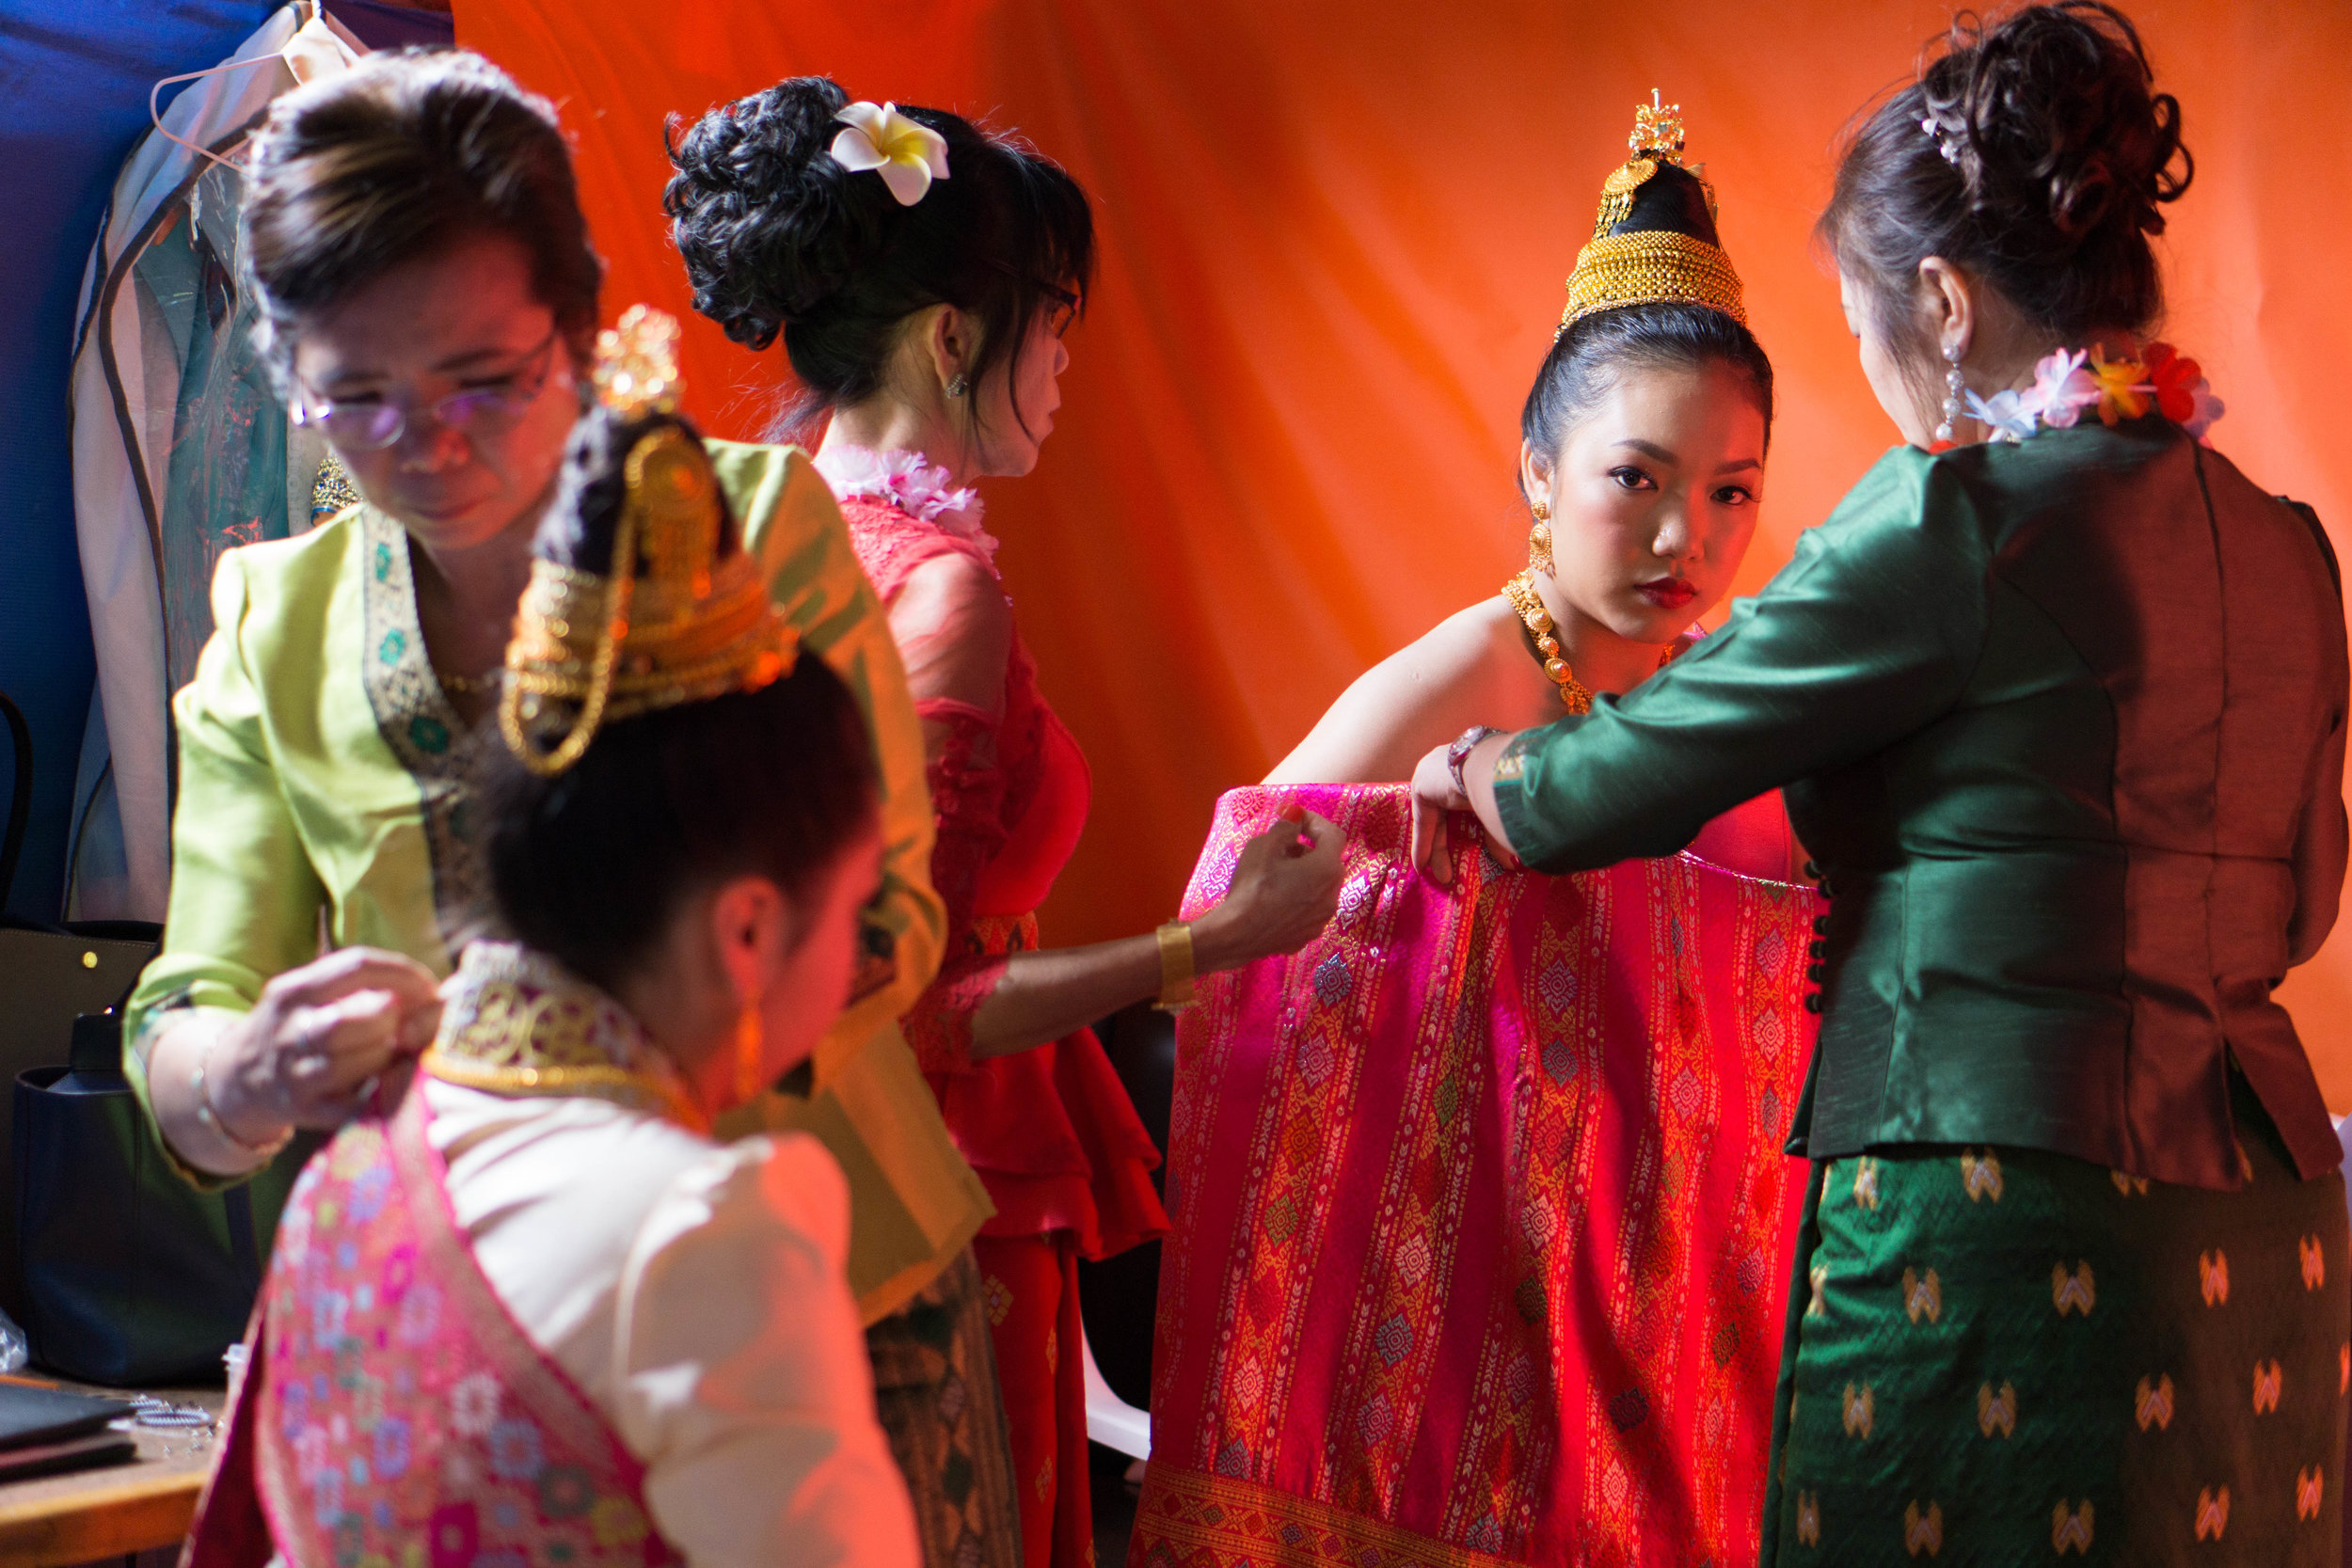 Bringing together Lao Americans in continuing their cultural legacy through storytelling and the arts.